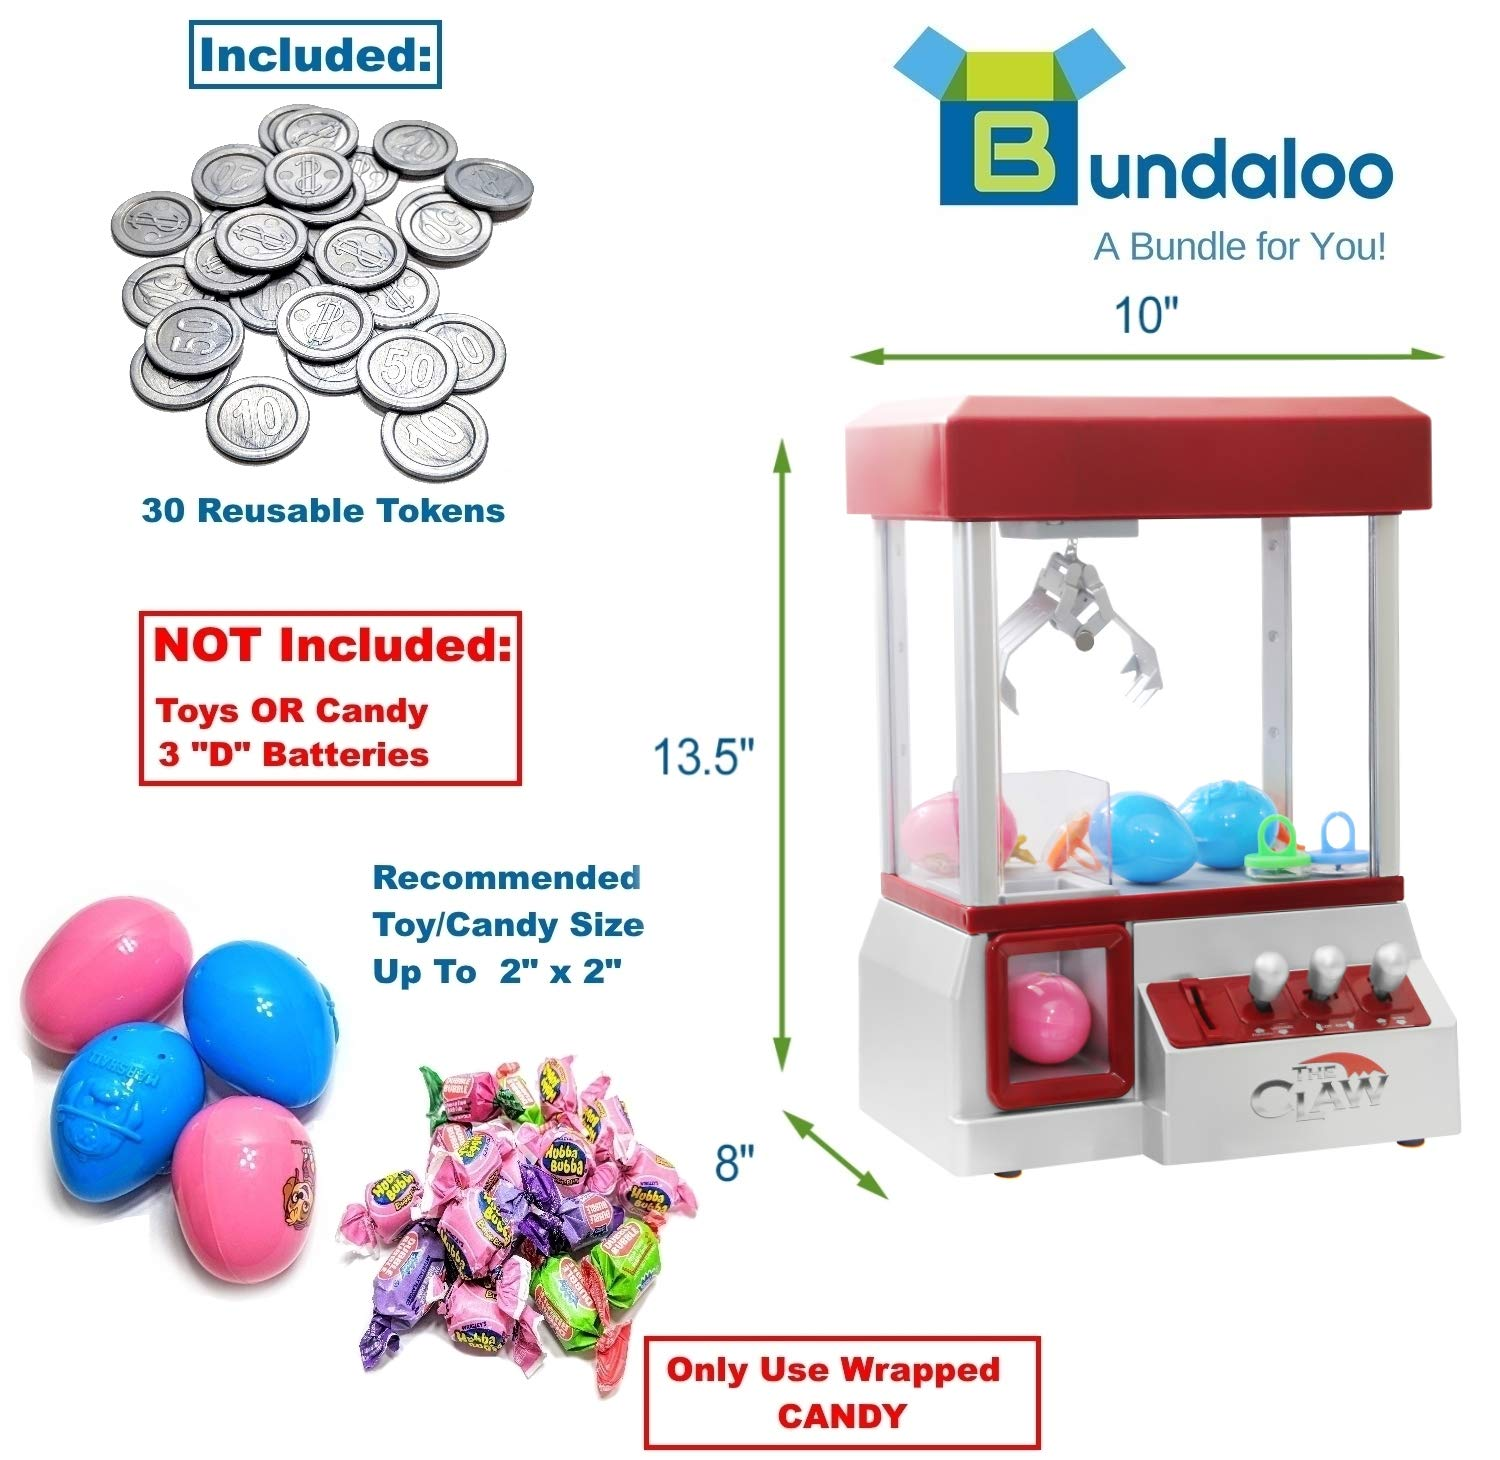 Bundaloo Claw Machine Arcade Game | Candy Grabber & Prize Dispenser Vending Machine Toy for Kids, with Music | Best Birthday & Christmas Gifts for Boys & Girls (Red Claw) by Bundaloo (Image #2)